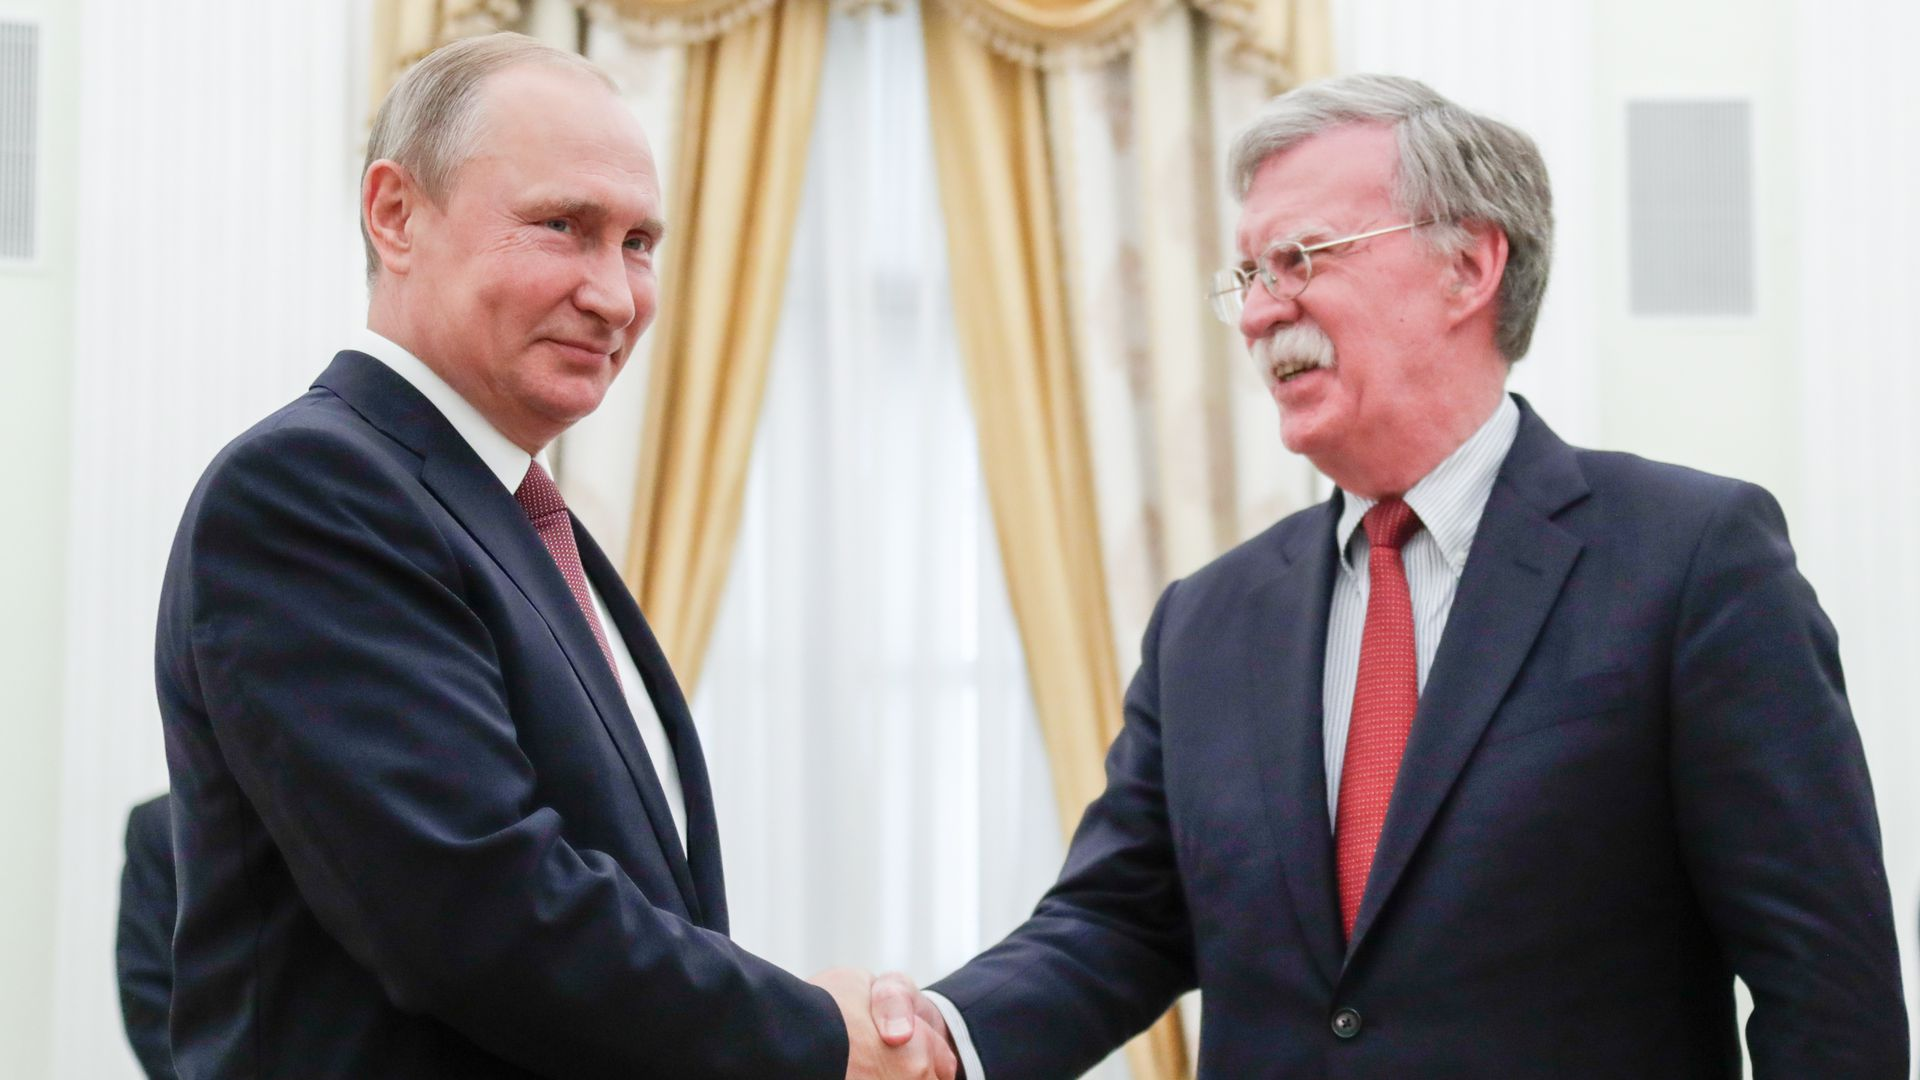 JUNE 27, 2018: Russia's President Vladimir Putin (L) and US National Security Adviser John Bolton shake hands during a meeting in the Kremlin.